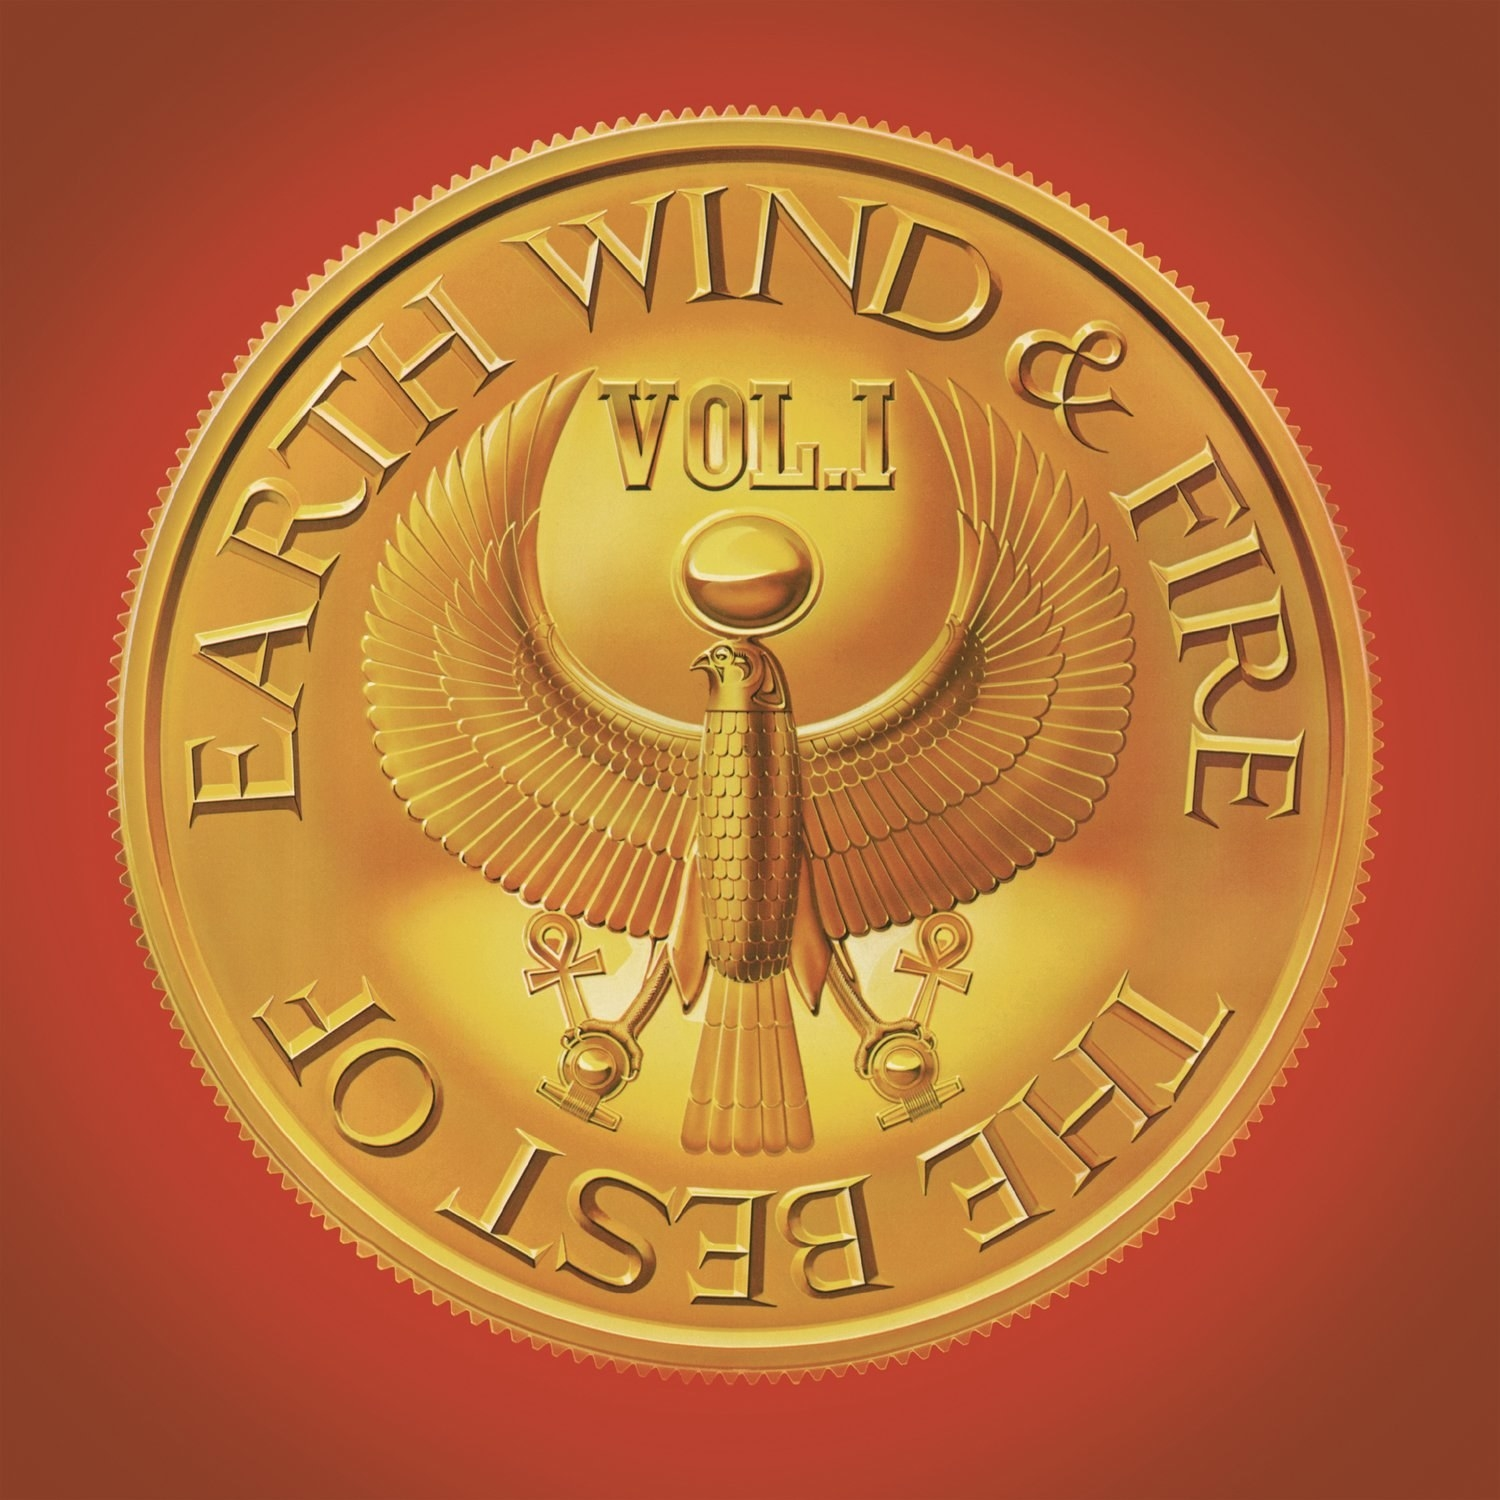 album cover of The Best of Earth, Wind & Fire, Vol. 1 showing the ancient Egyptian god, Horus